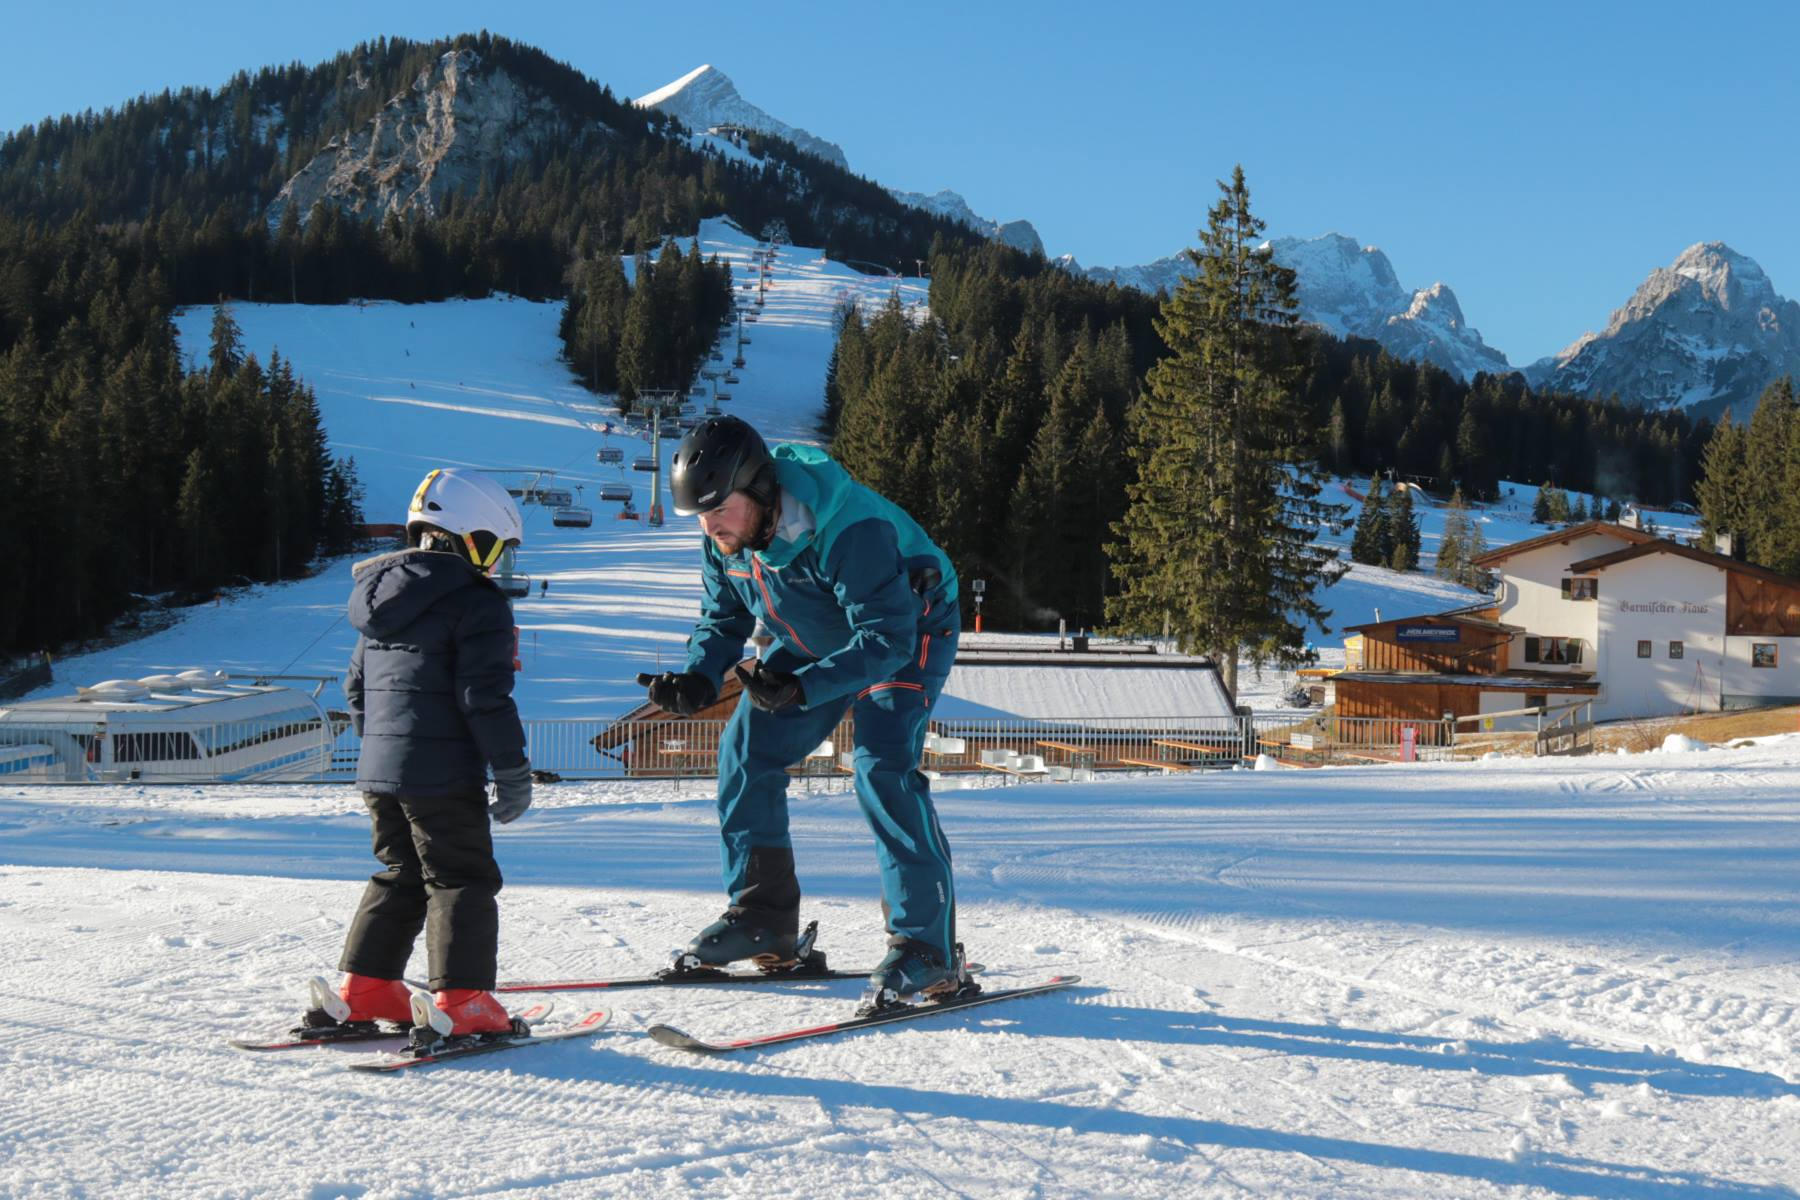 elr_activities_ski_lessons_01_web.jpg